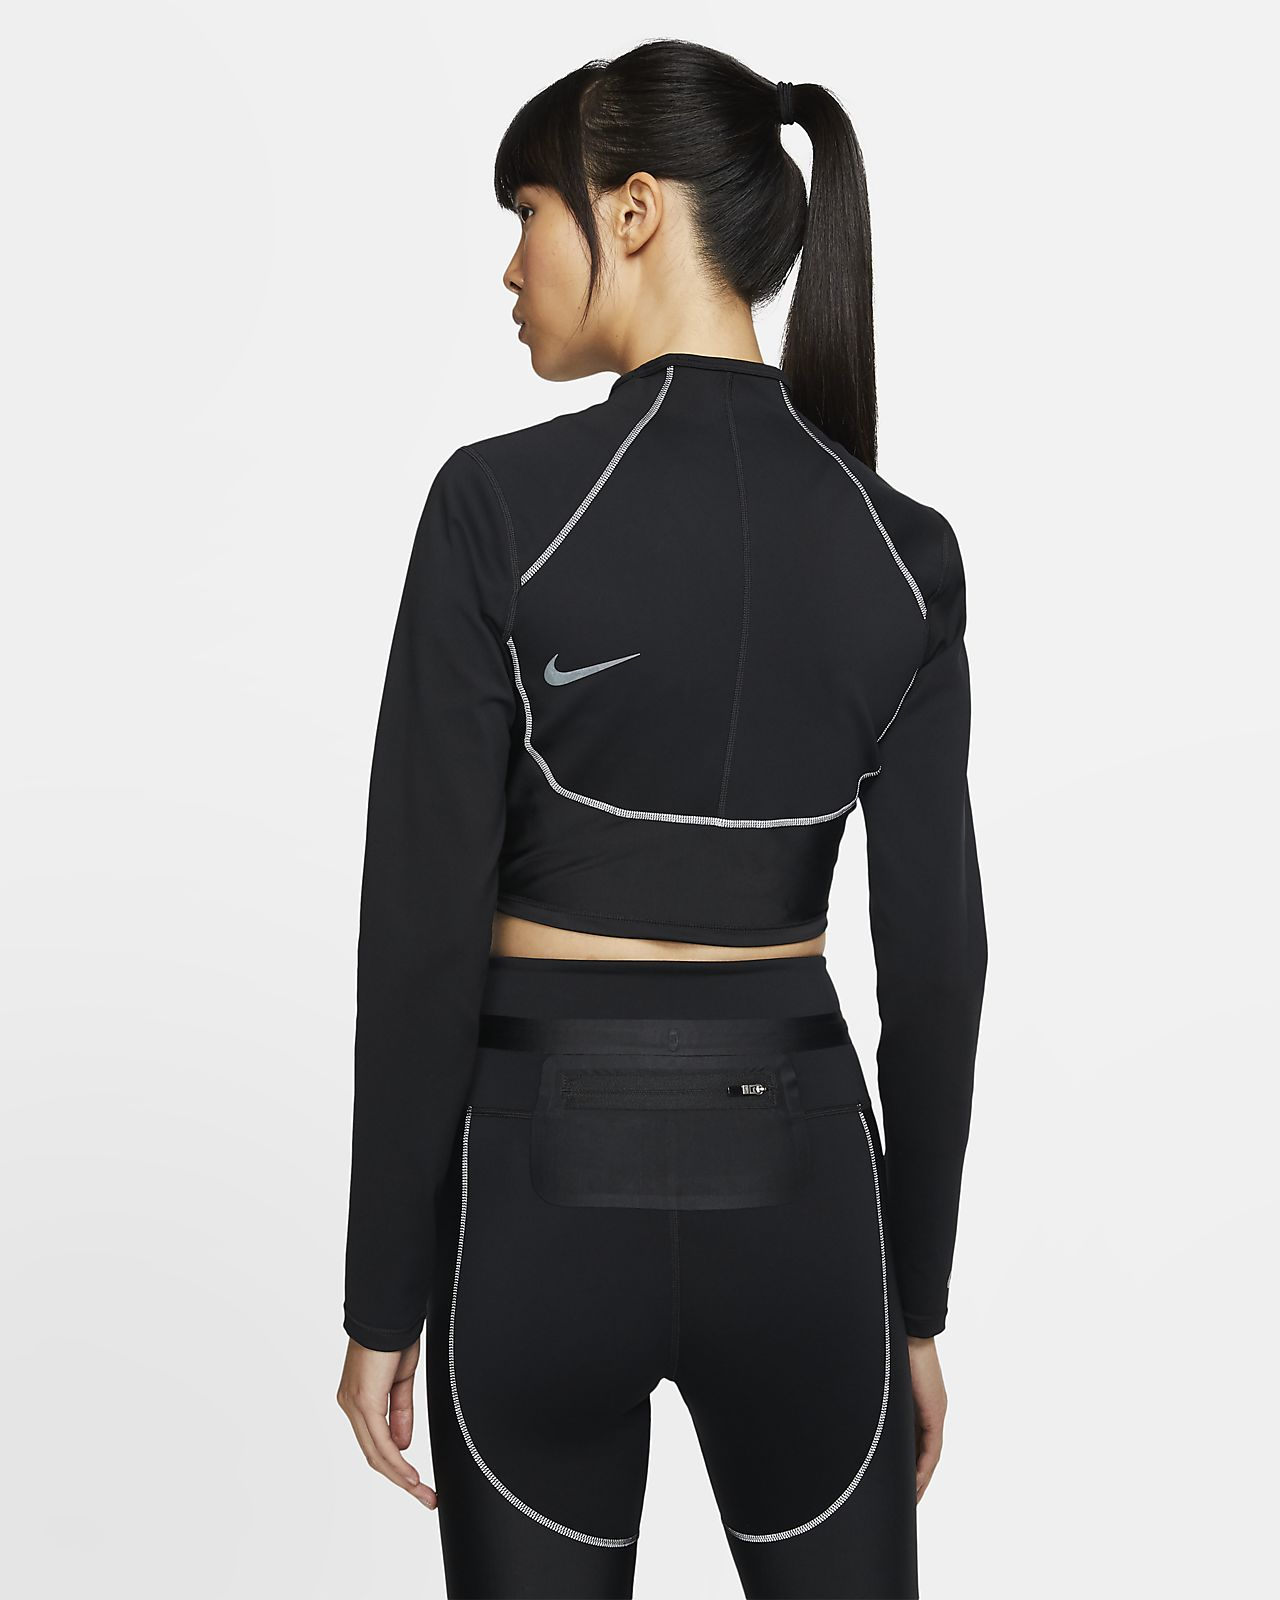 Nike City Ready Women's Training Top